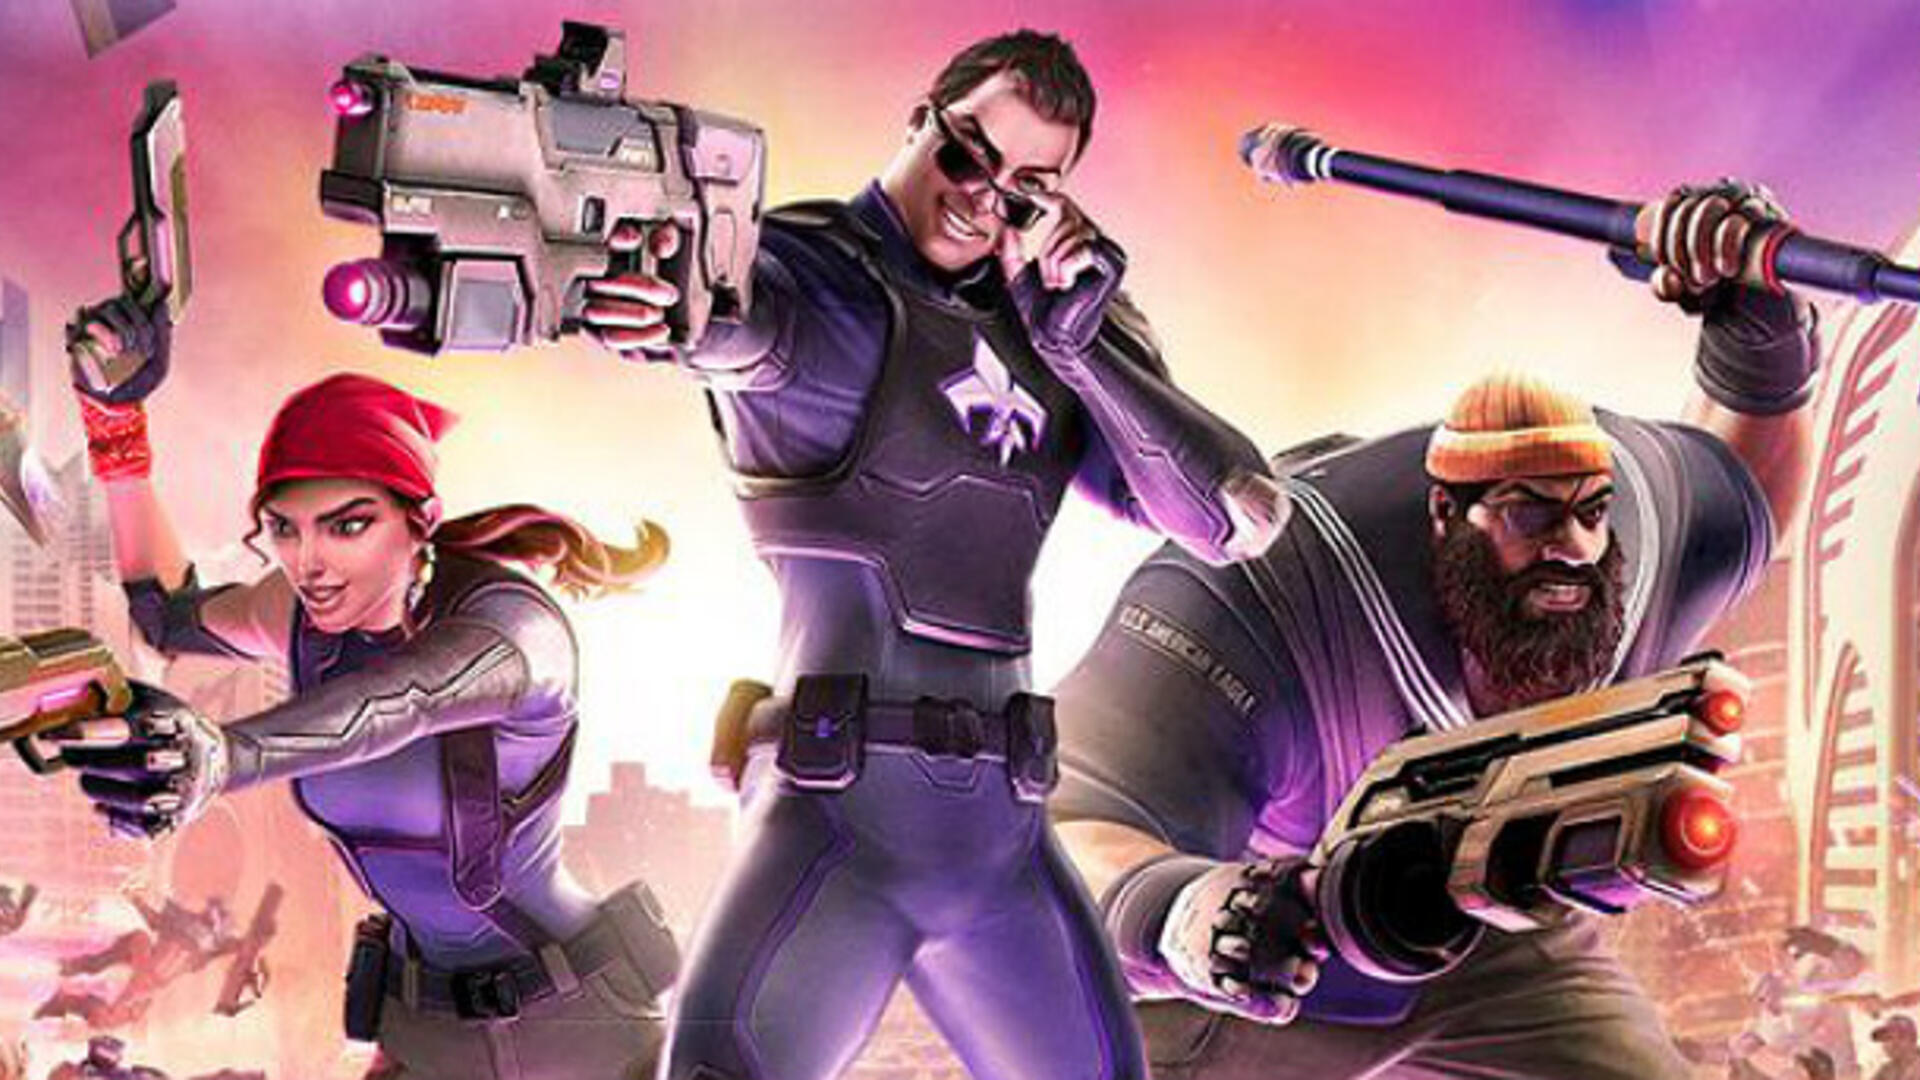 Reported Layoffs at Deep Silver Volition Over Poor Agent of Mayhem Sales